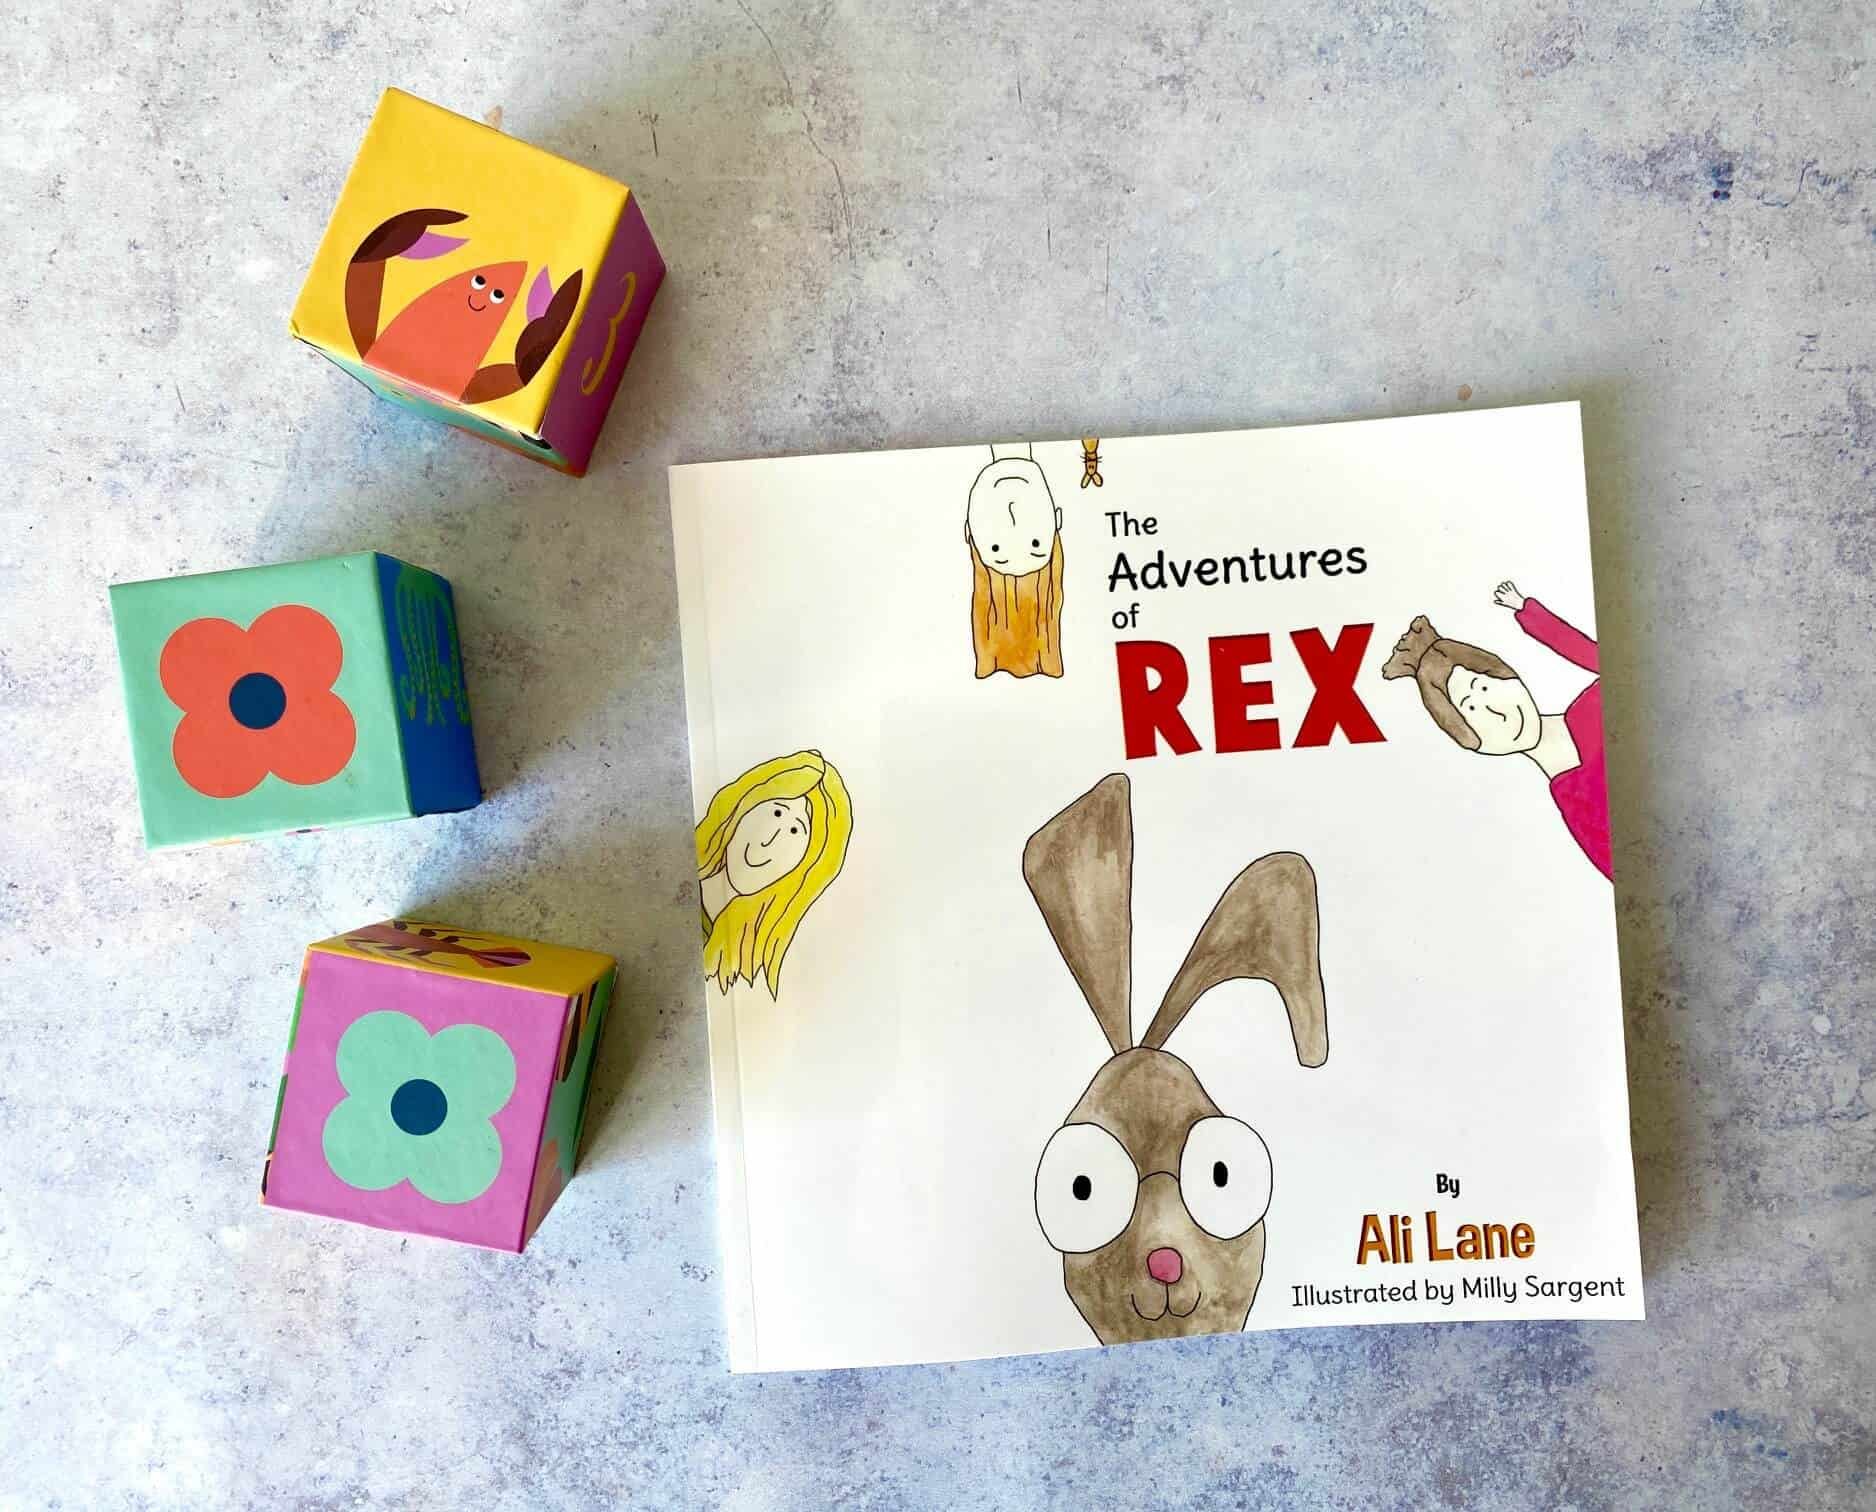 The Adventures of Rex by Ali Lane - Review